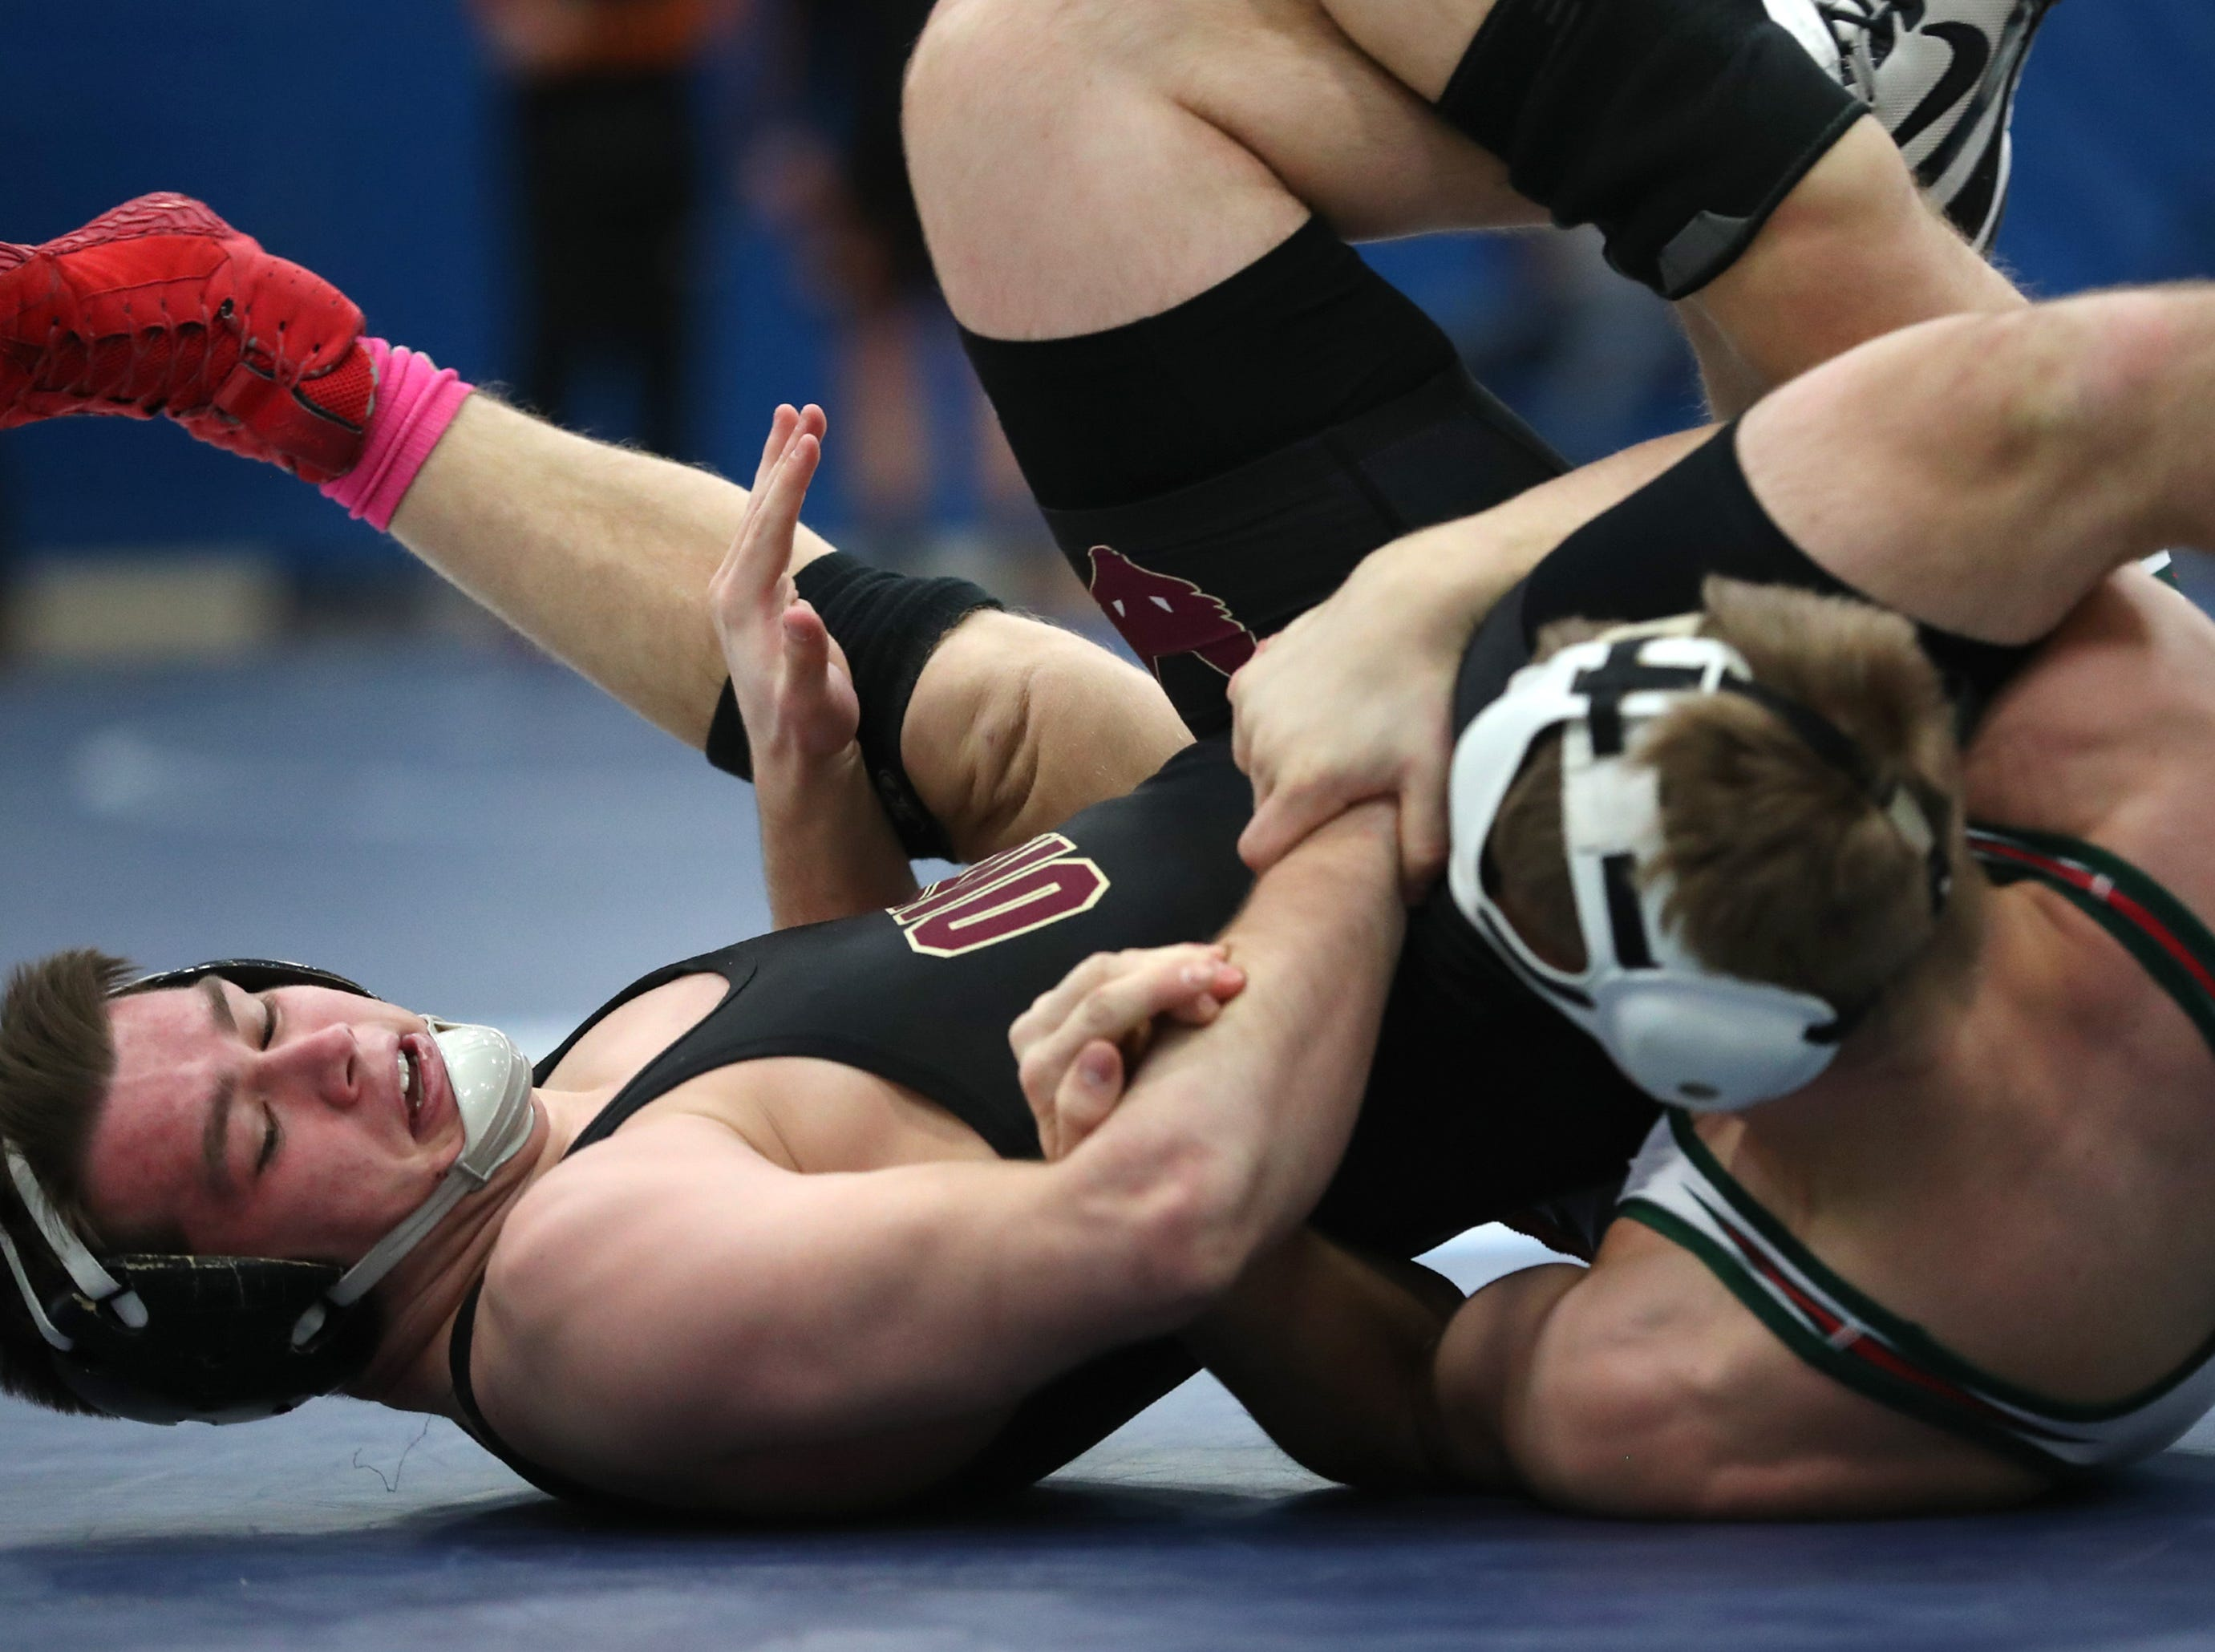 Omro's Jacob Kafer and Berlin's Austin Schrei wrestle for first place in the 170-pound division during the D2 wrestling regional Saturday Feb. 9, 2019, in Little Chute, Wis. Schrei won the match 8-2.